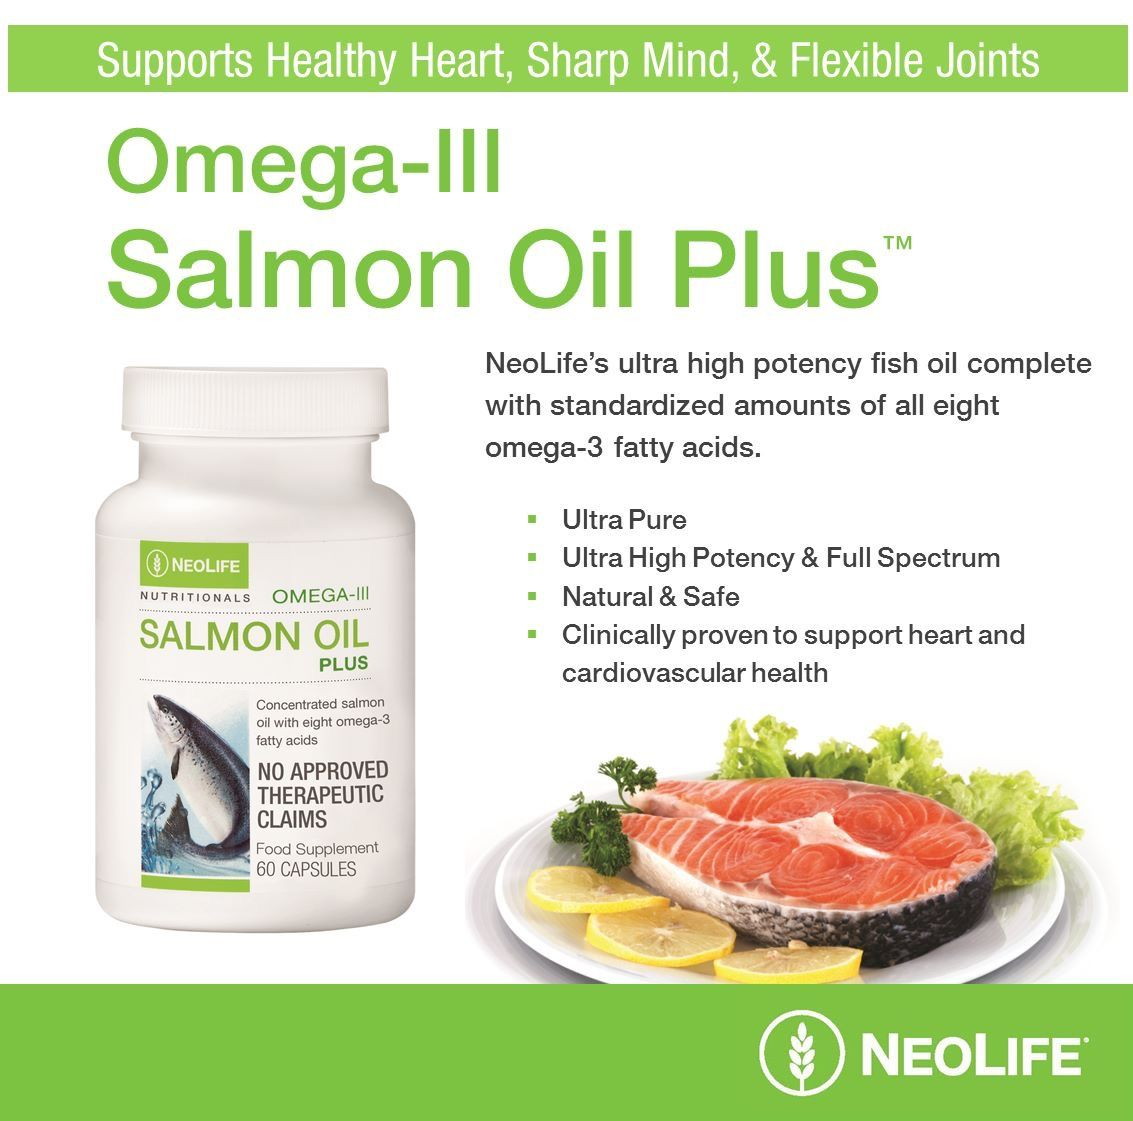 Pin By Dovilė Varnienė On Neolife Natural Health Supplements Salmon Oil Supplement Natural Supplements